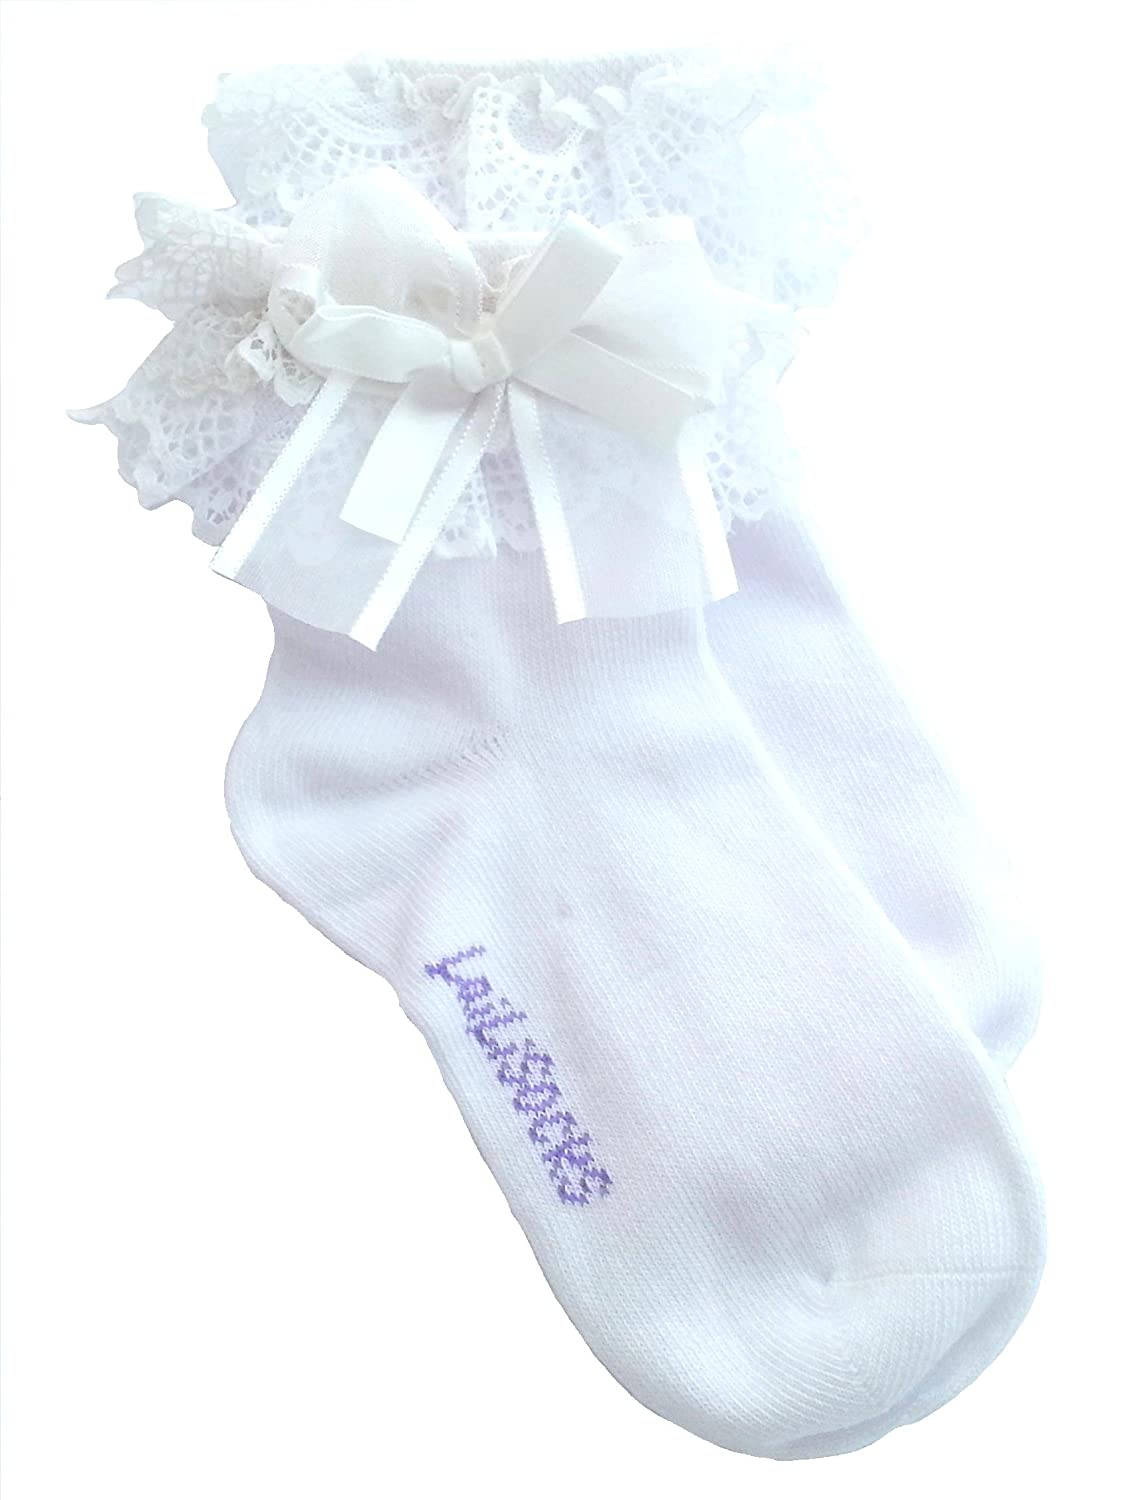 eca18096725 Top 4 Pairs of Girls Vintage Frilly WHITE School Socks Age 1 to 10 EL98